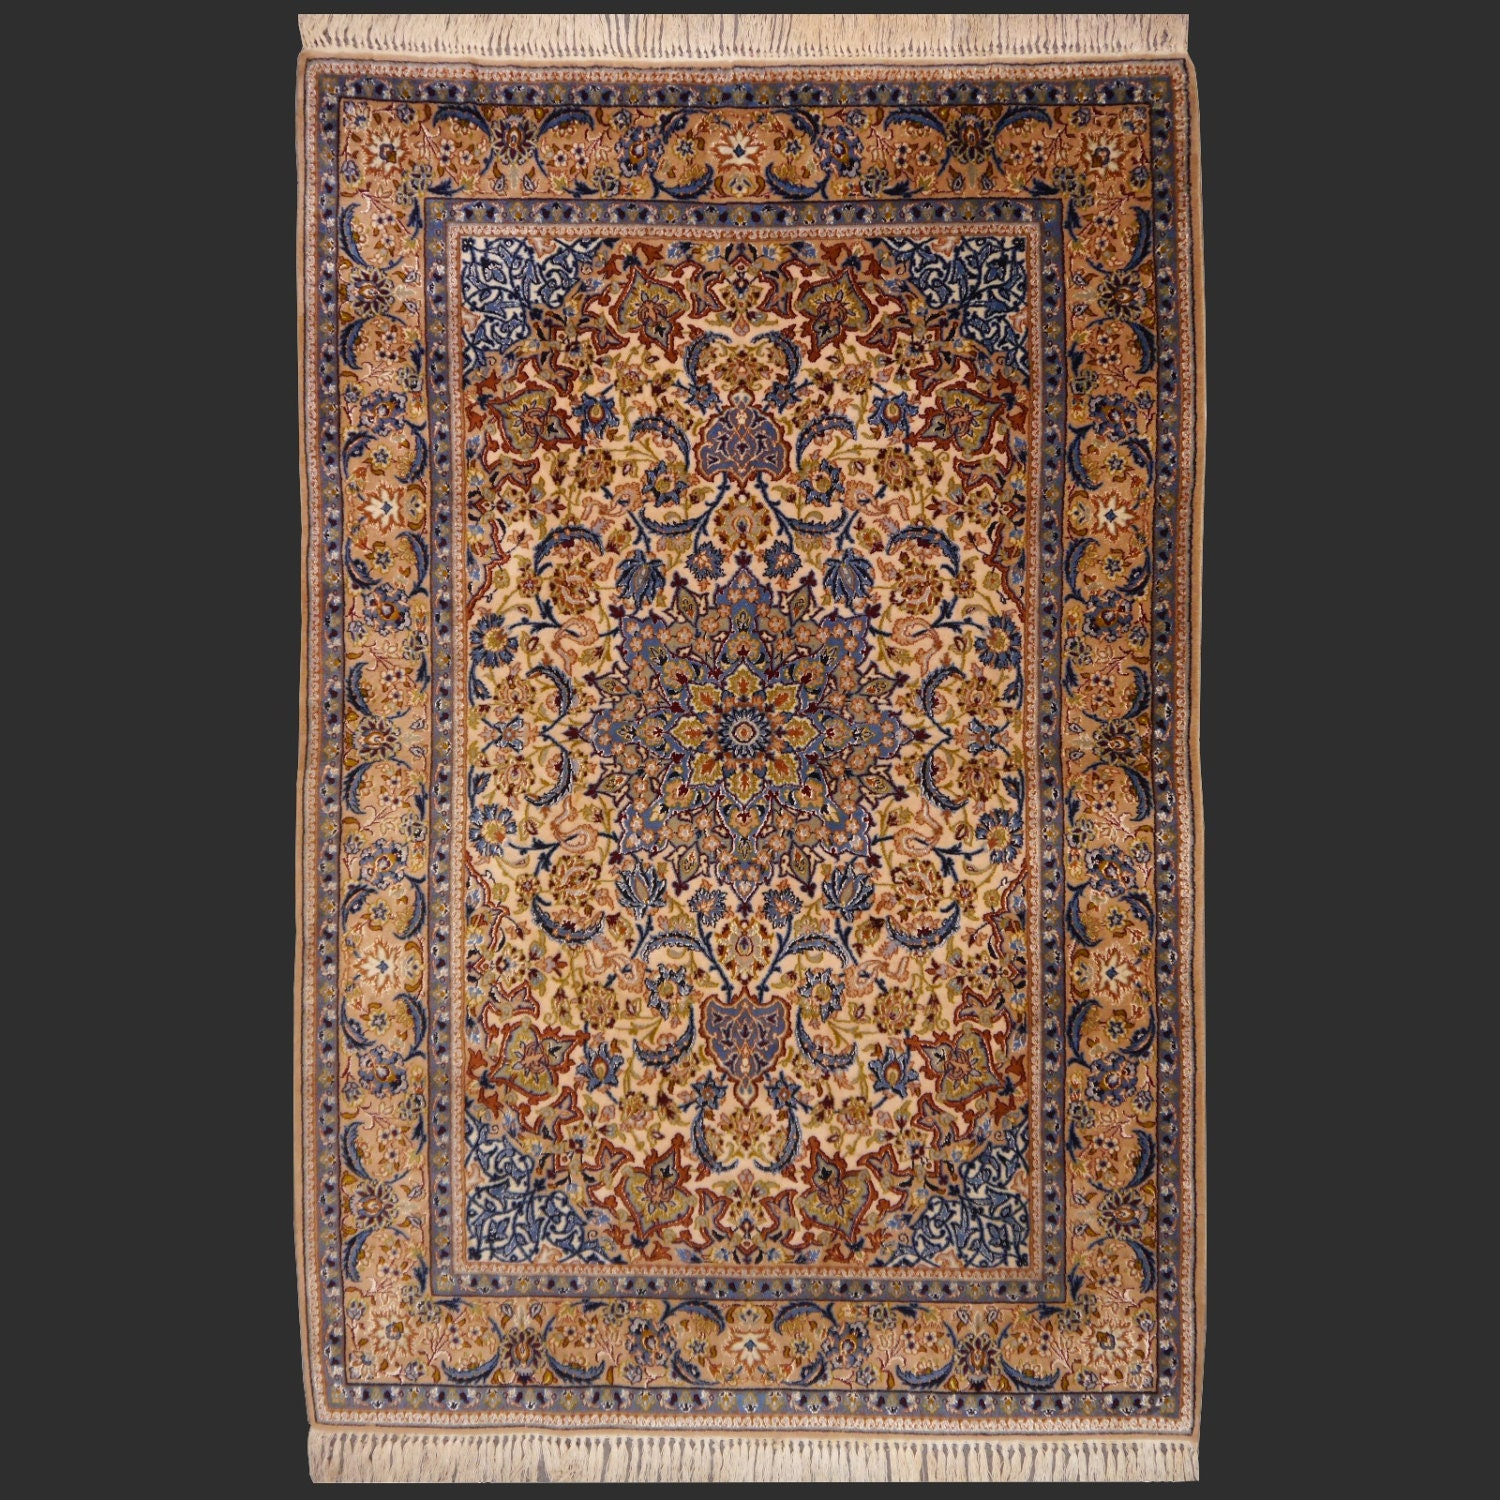 Exquisit Persian Rug Isfahan 5.7 X 3.8 Ft / 168 X 110 Cm Cm